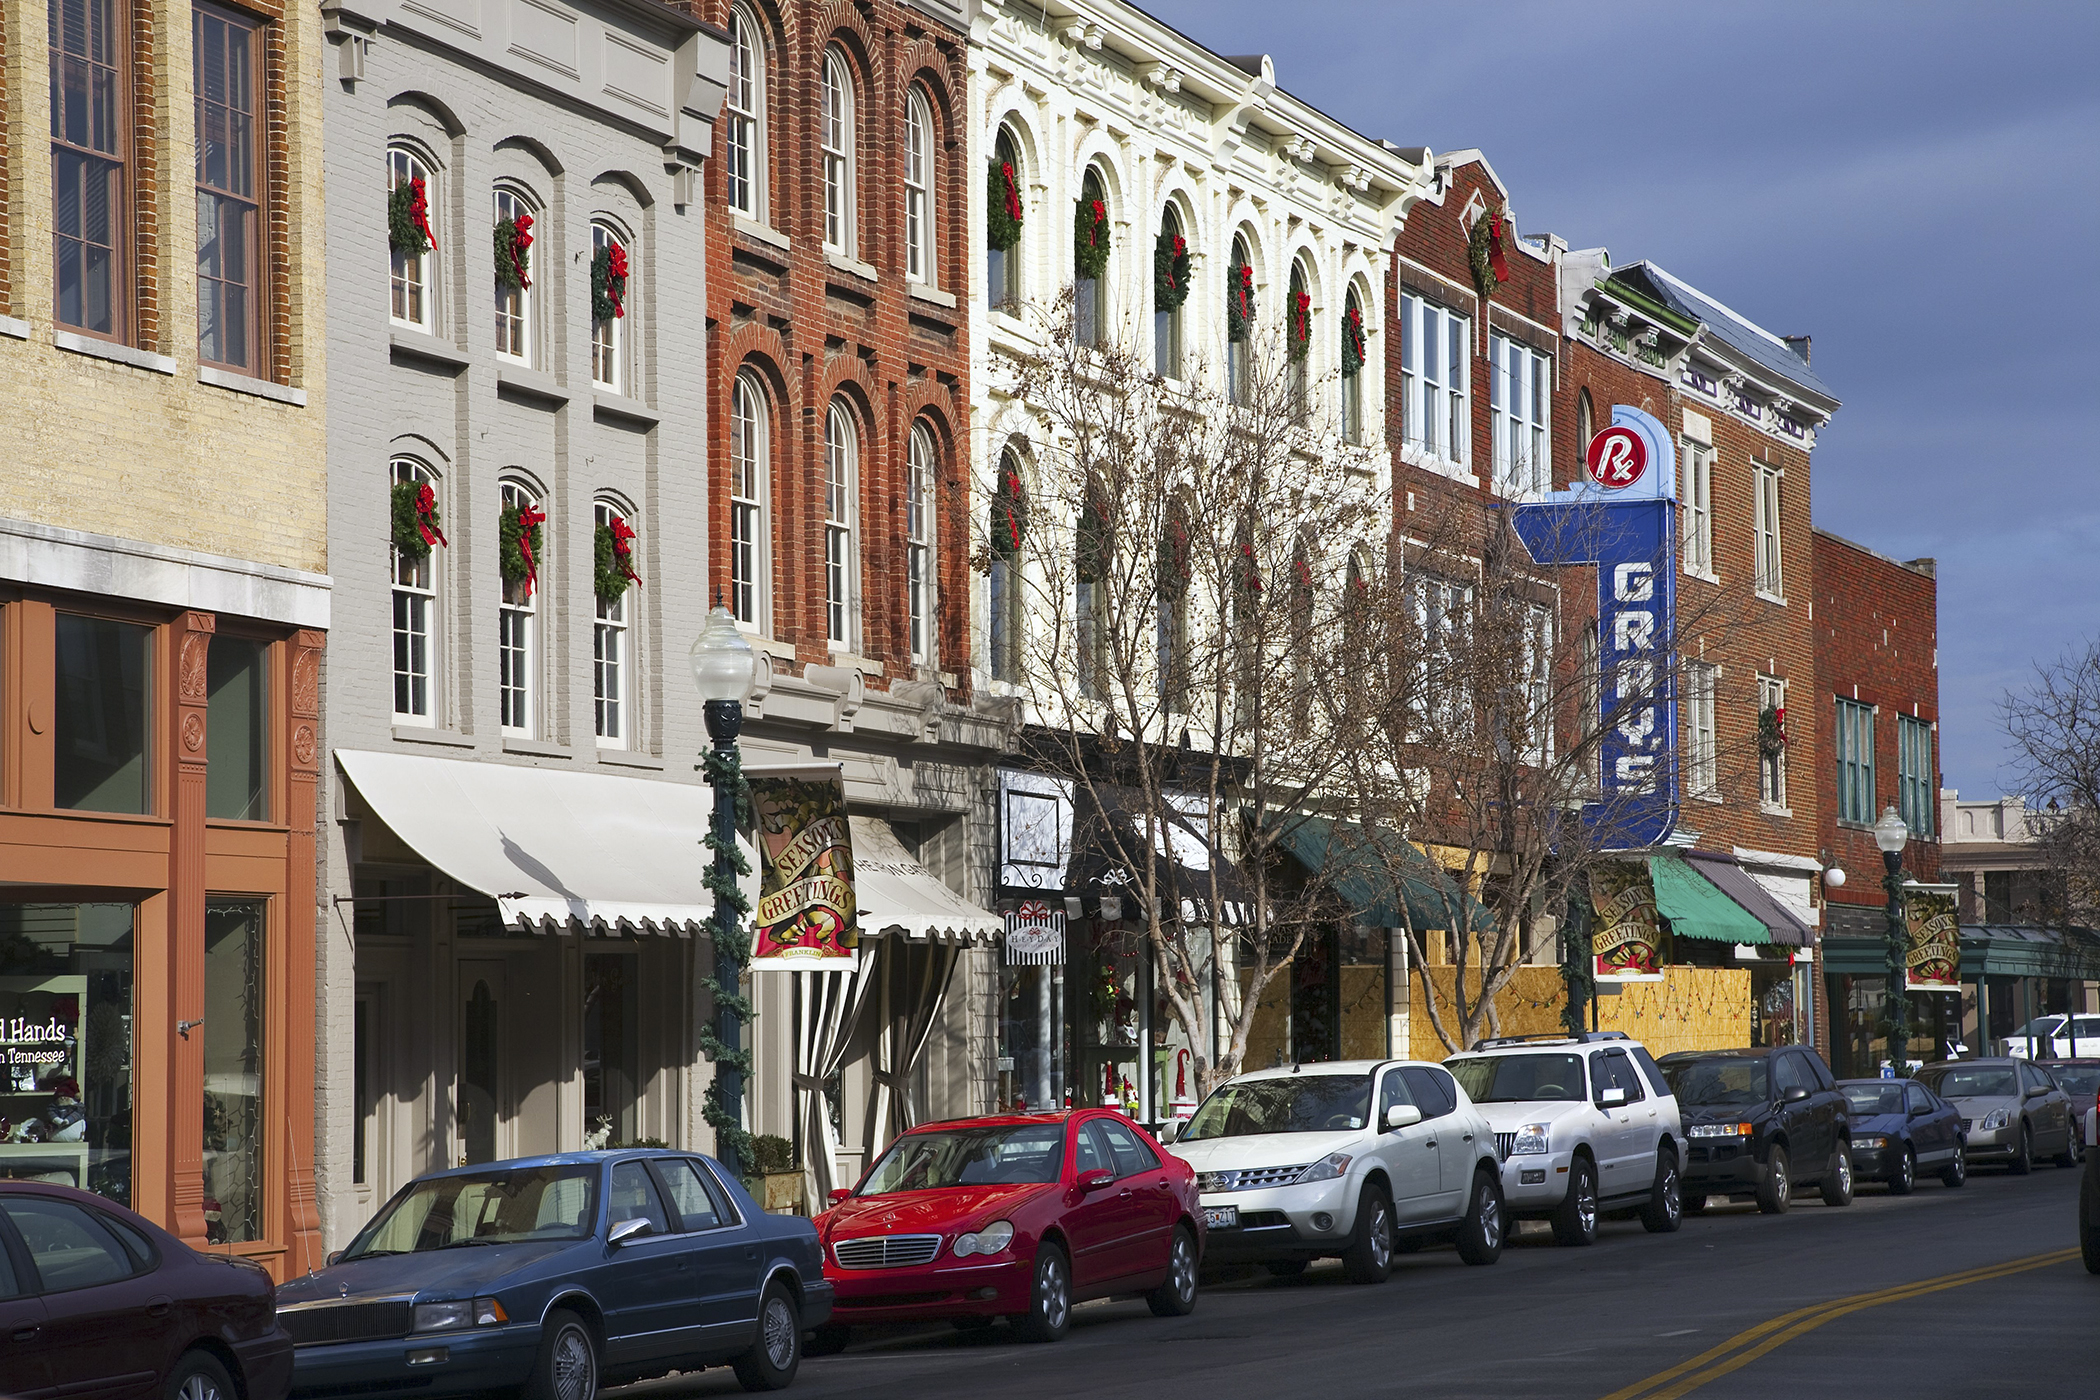 <strong>5. Franklin, Tennessee:</strong> Roughly a 30-minute drive to the state's capital city, Nashville, Franklin is home to numerous corporate headquarters that support an 11.9% projected job growth rate. Pictured: The red-brick storefronts of historic Main Street.